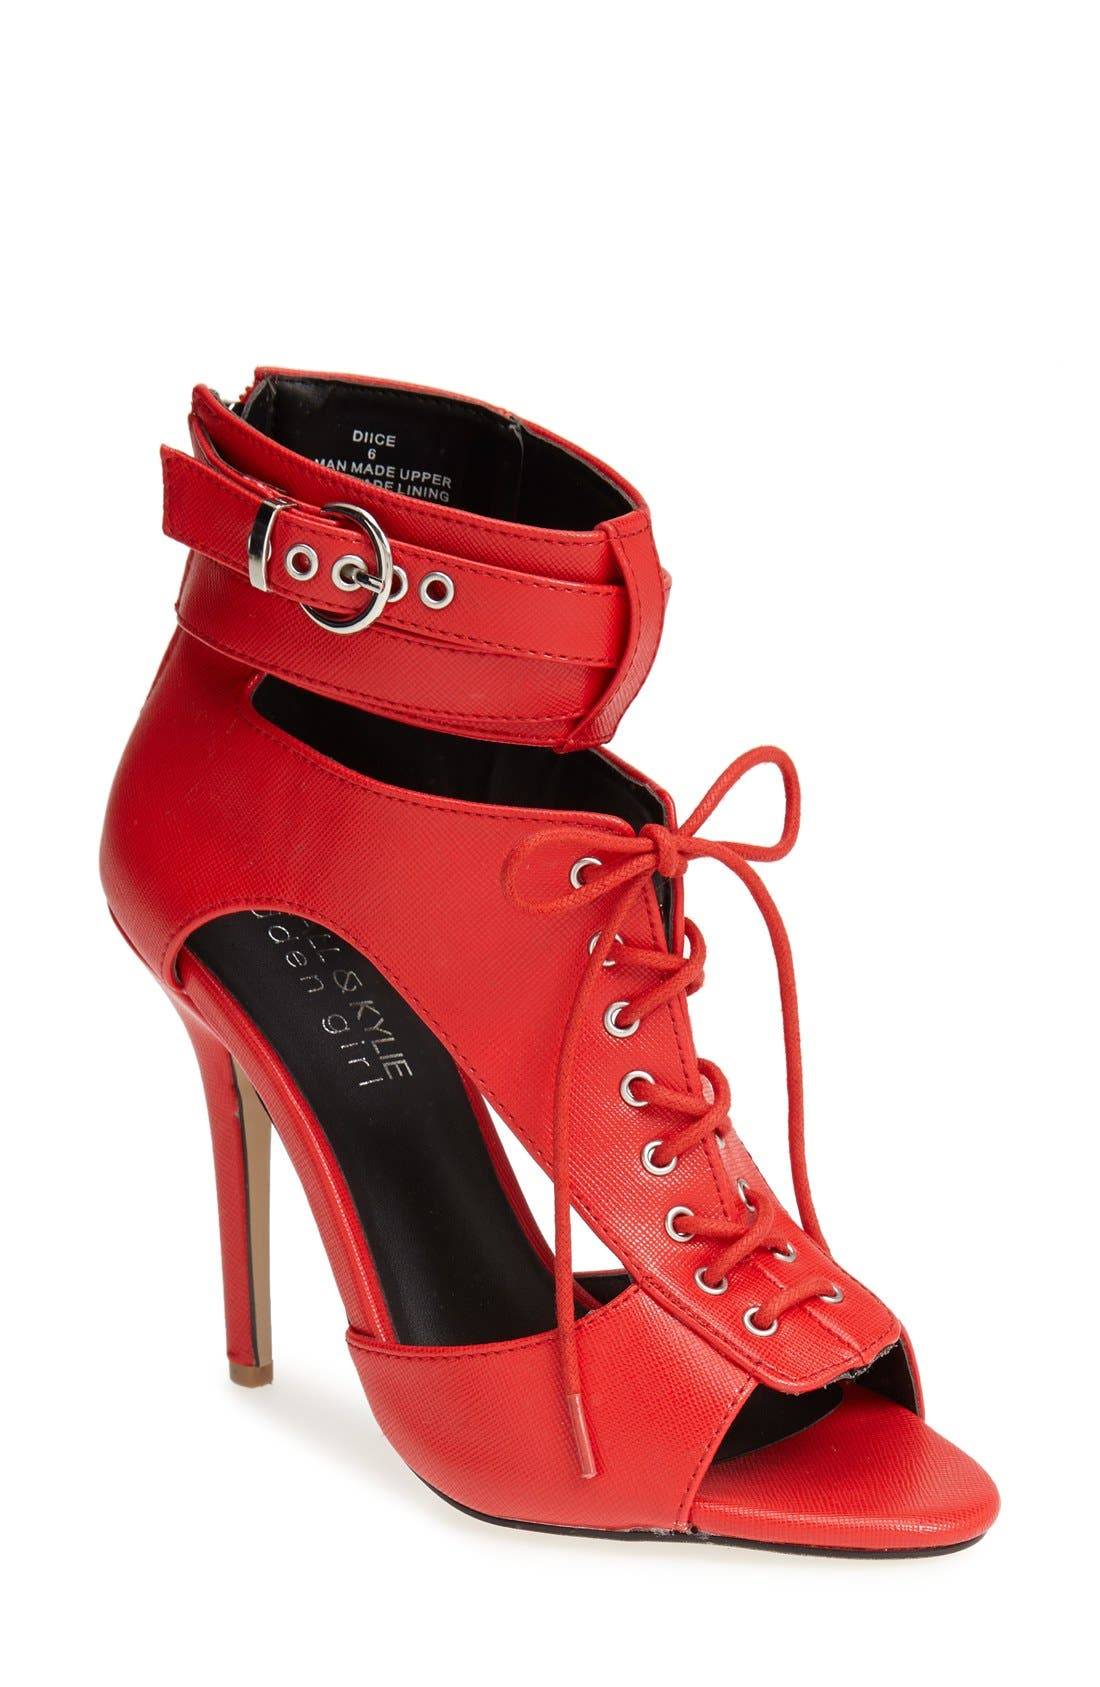 Main Image - KENDALL + KYLIE Madden Girl 'Diice' Ankle Cuff Sandal (Women)